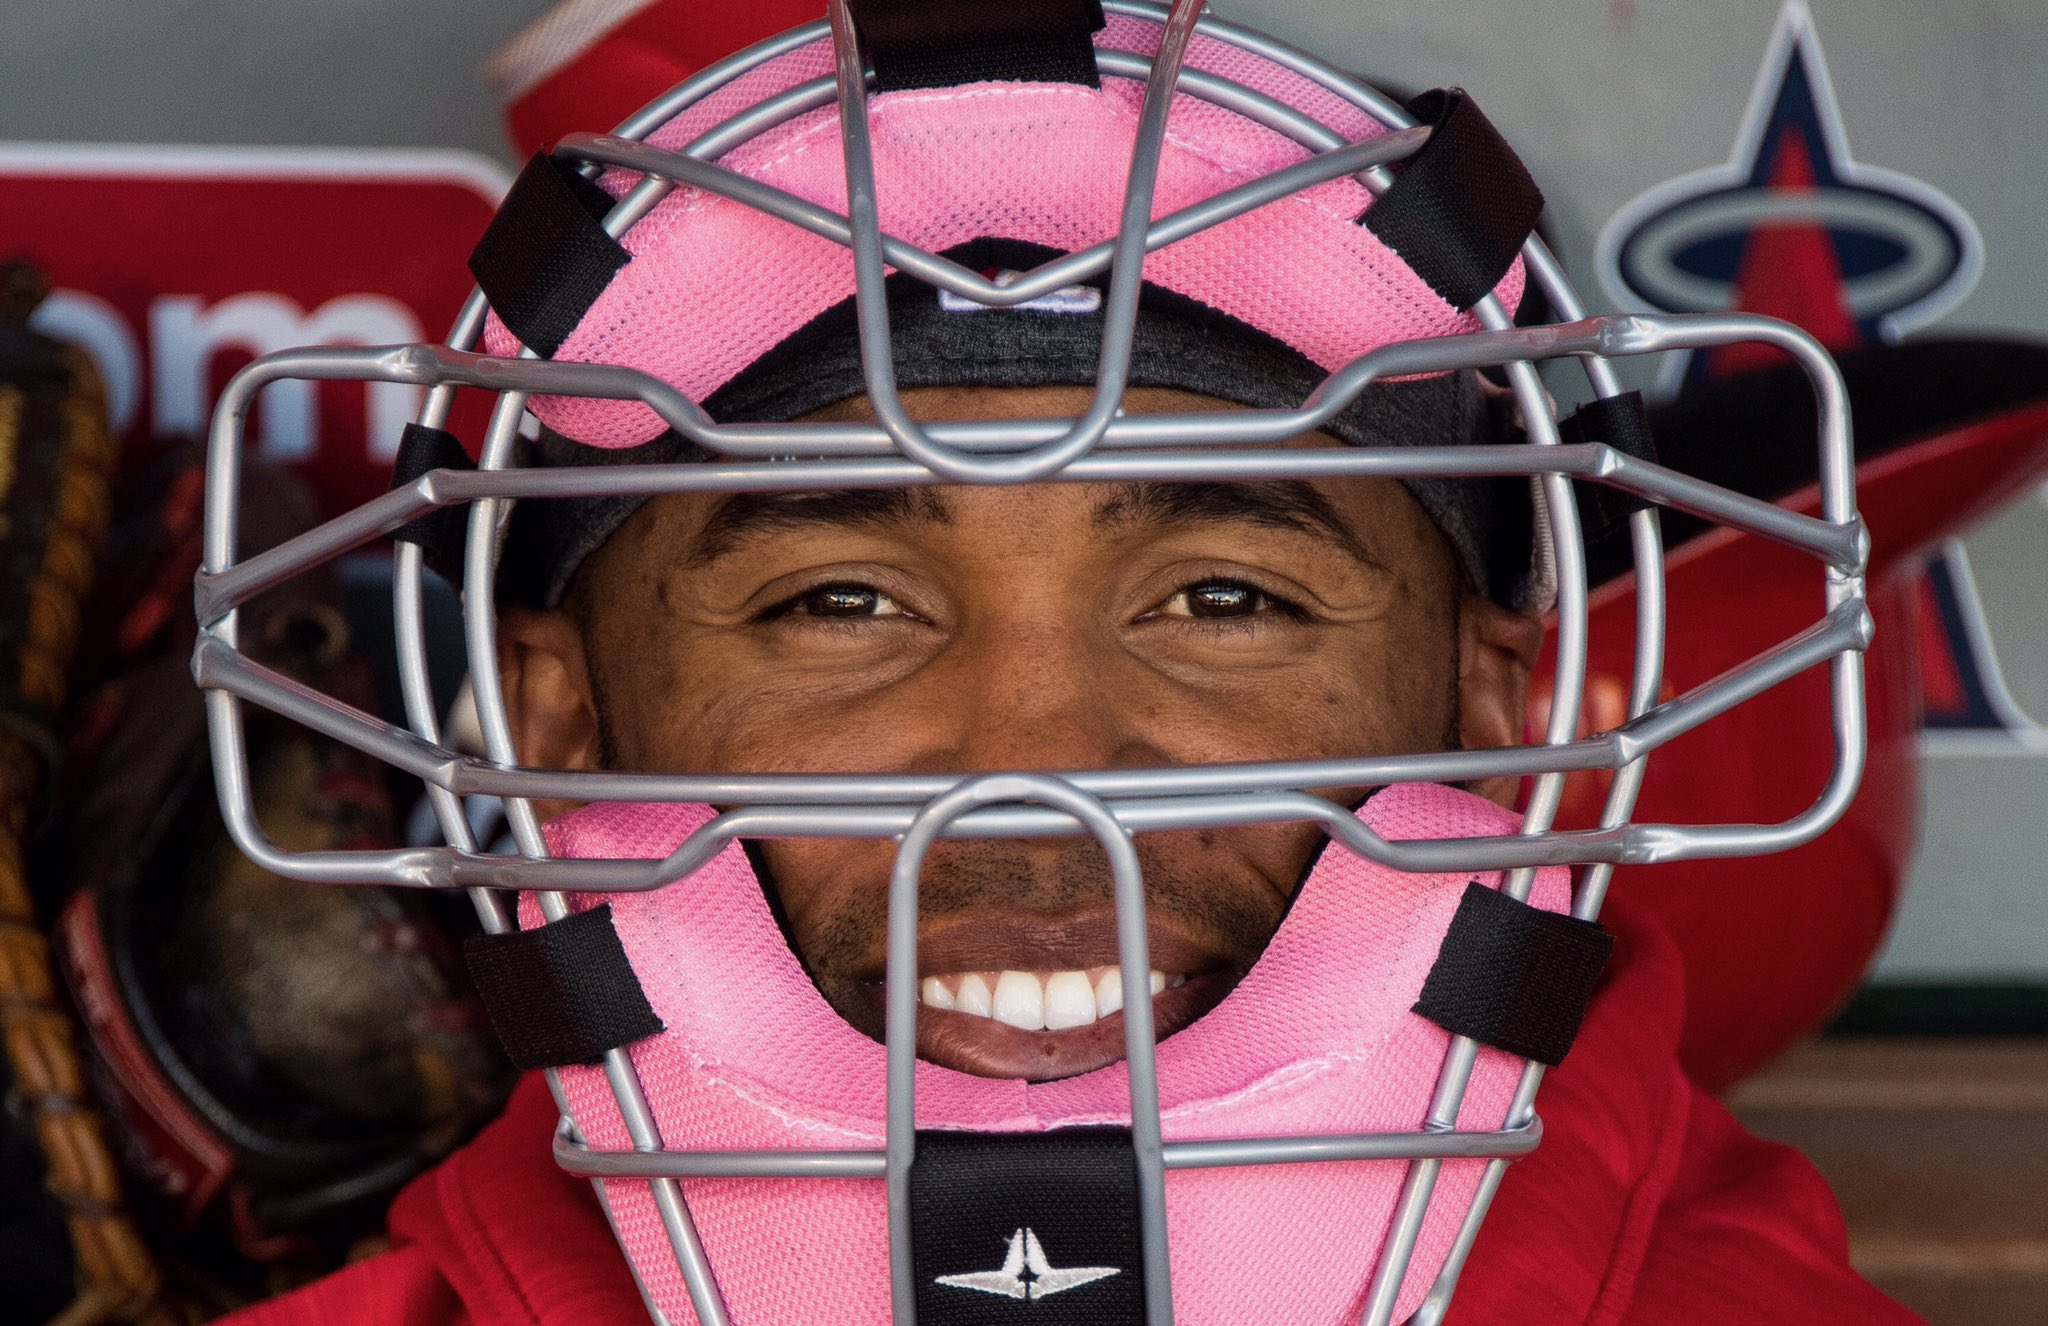 Think pink.   https://t.co/rWpu7NyQSu (via MLB Fans) https://t.co/zjqwtLUqRr